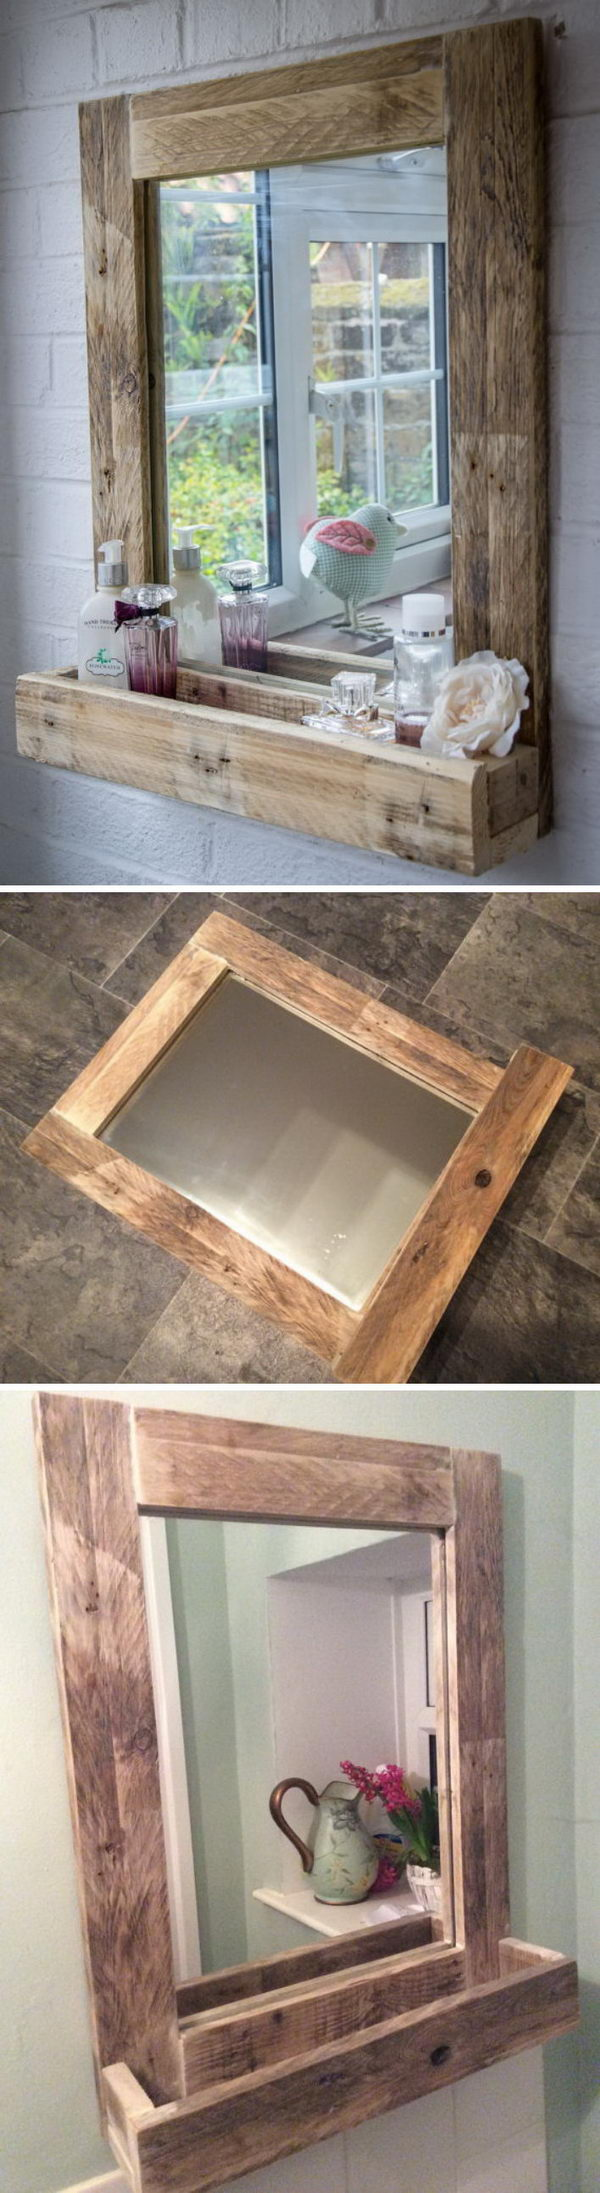 Rustic Wood Mirror With Storage Shelf.